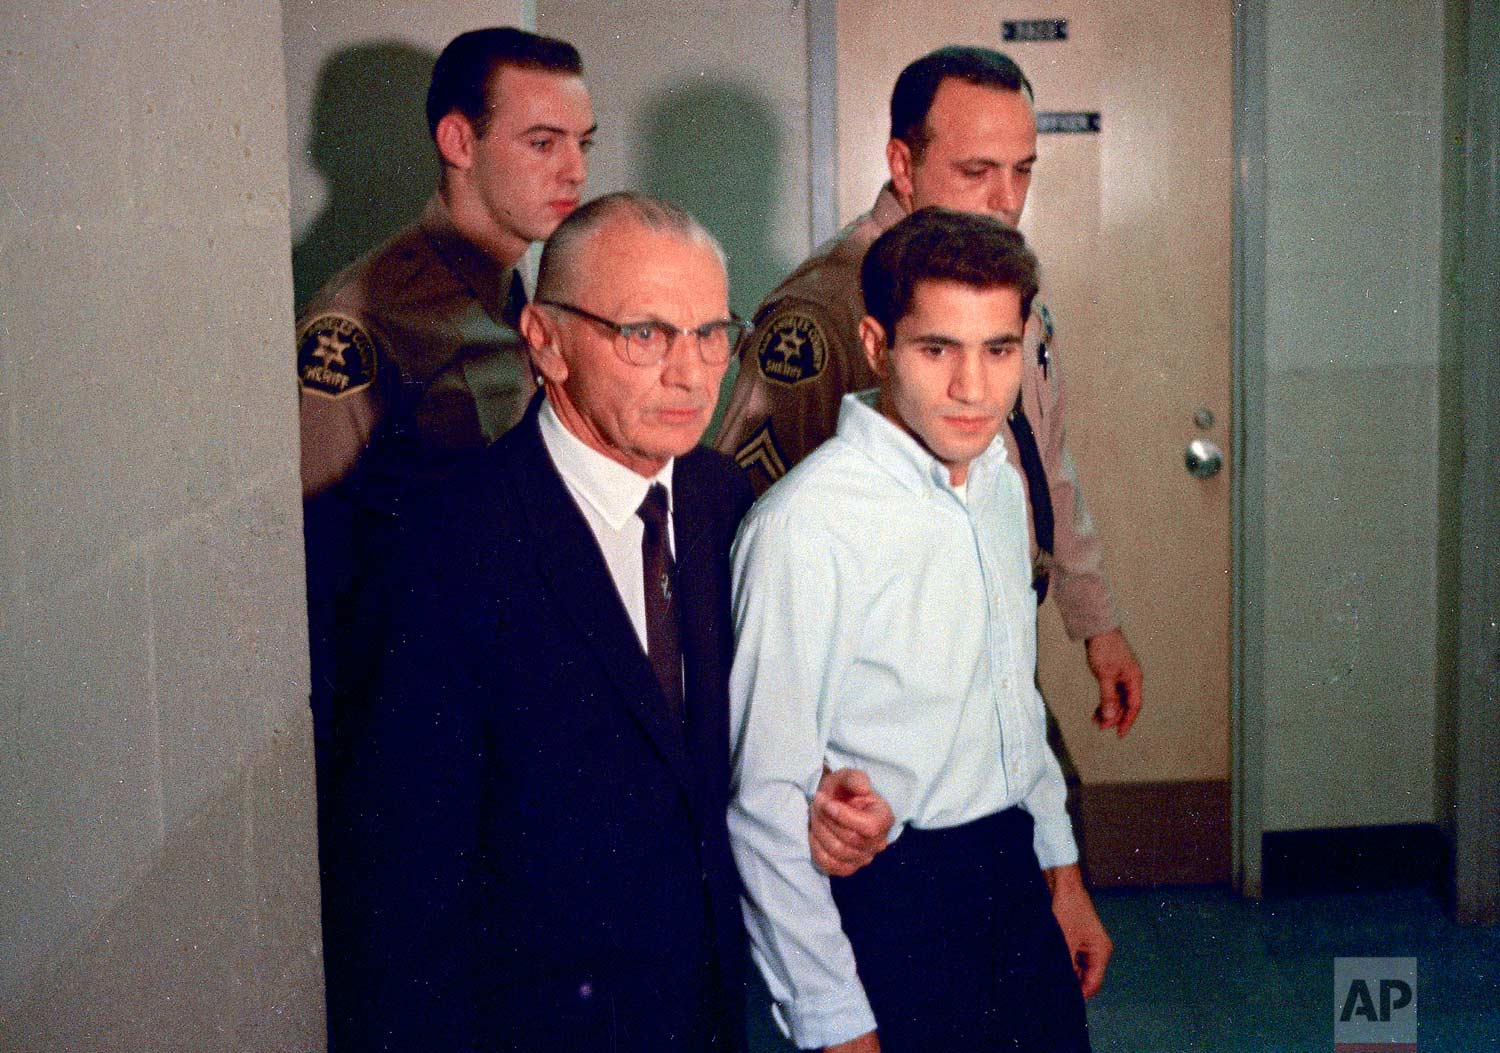 This June 1968 photo shows Sirhan Sirhan, right, a suspect of shooting Sen. Robert F. Kennedy, with his attorney Russell E. Parsons in Los Angeles. Associated Press Hollywood reporter Bob Thomas was on a one-night political assignment in June 1968 to cover Kennedy's victory in the California presidential primary when mayhem unfolded before his eyes. (AP Photo)